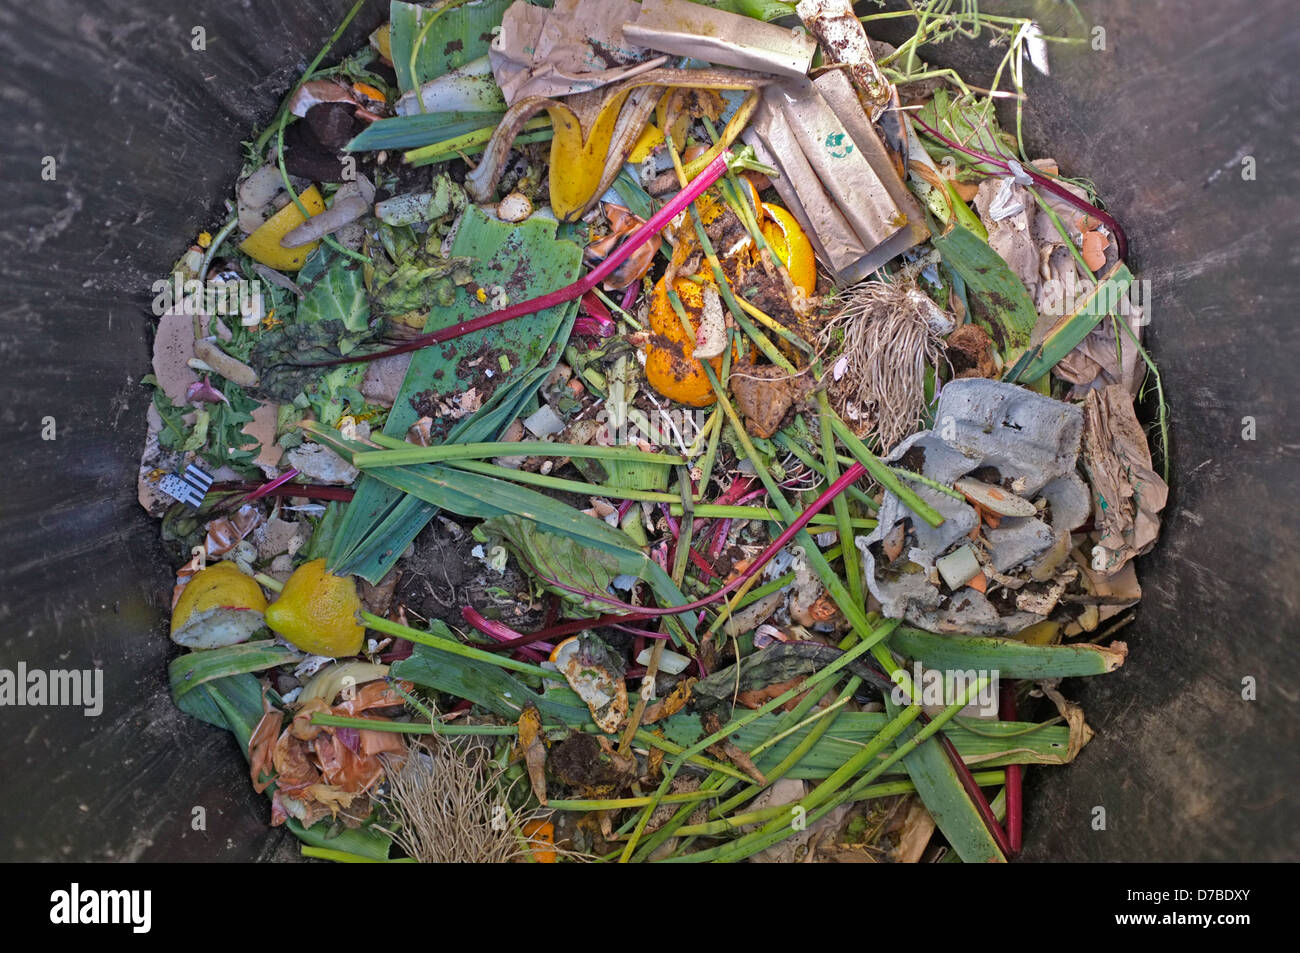 Overhead shot of a compost bin. - Stock Image